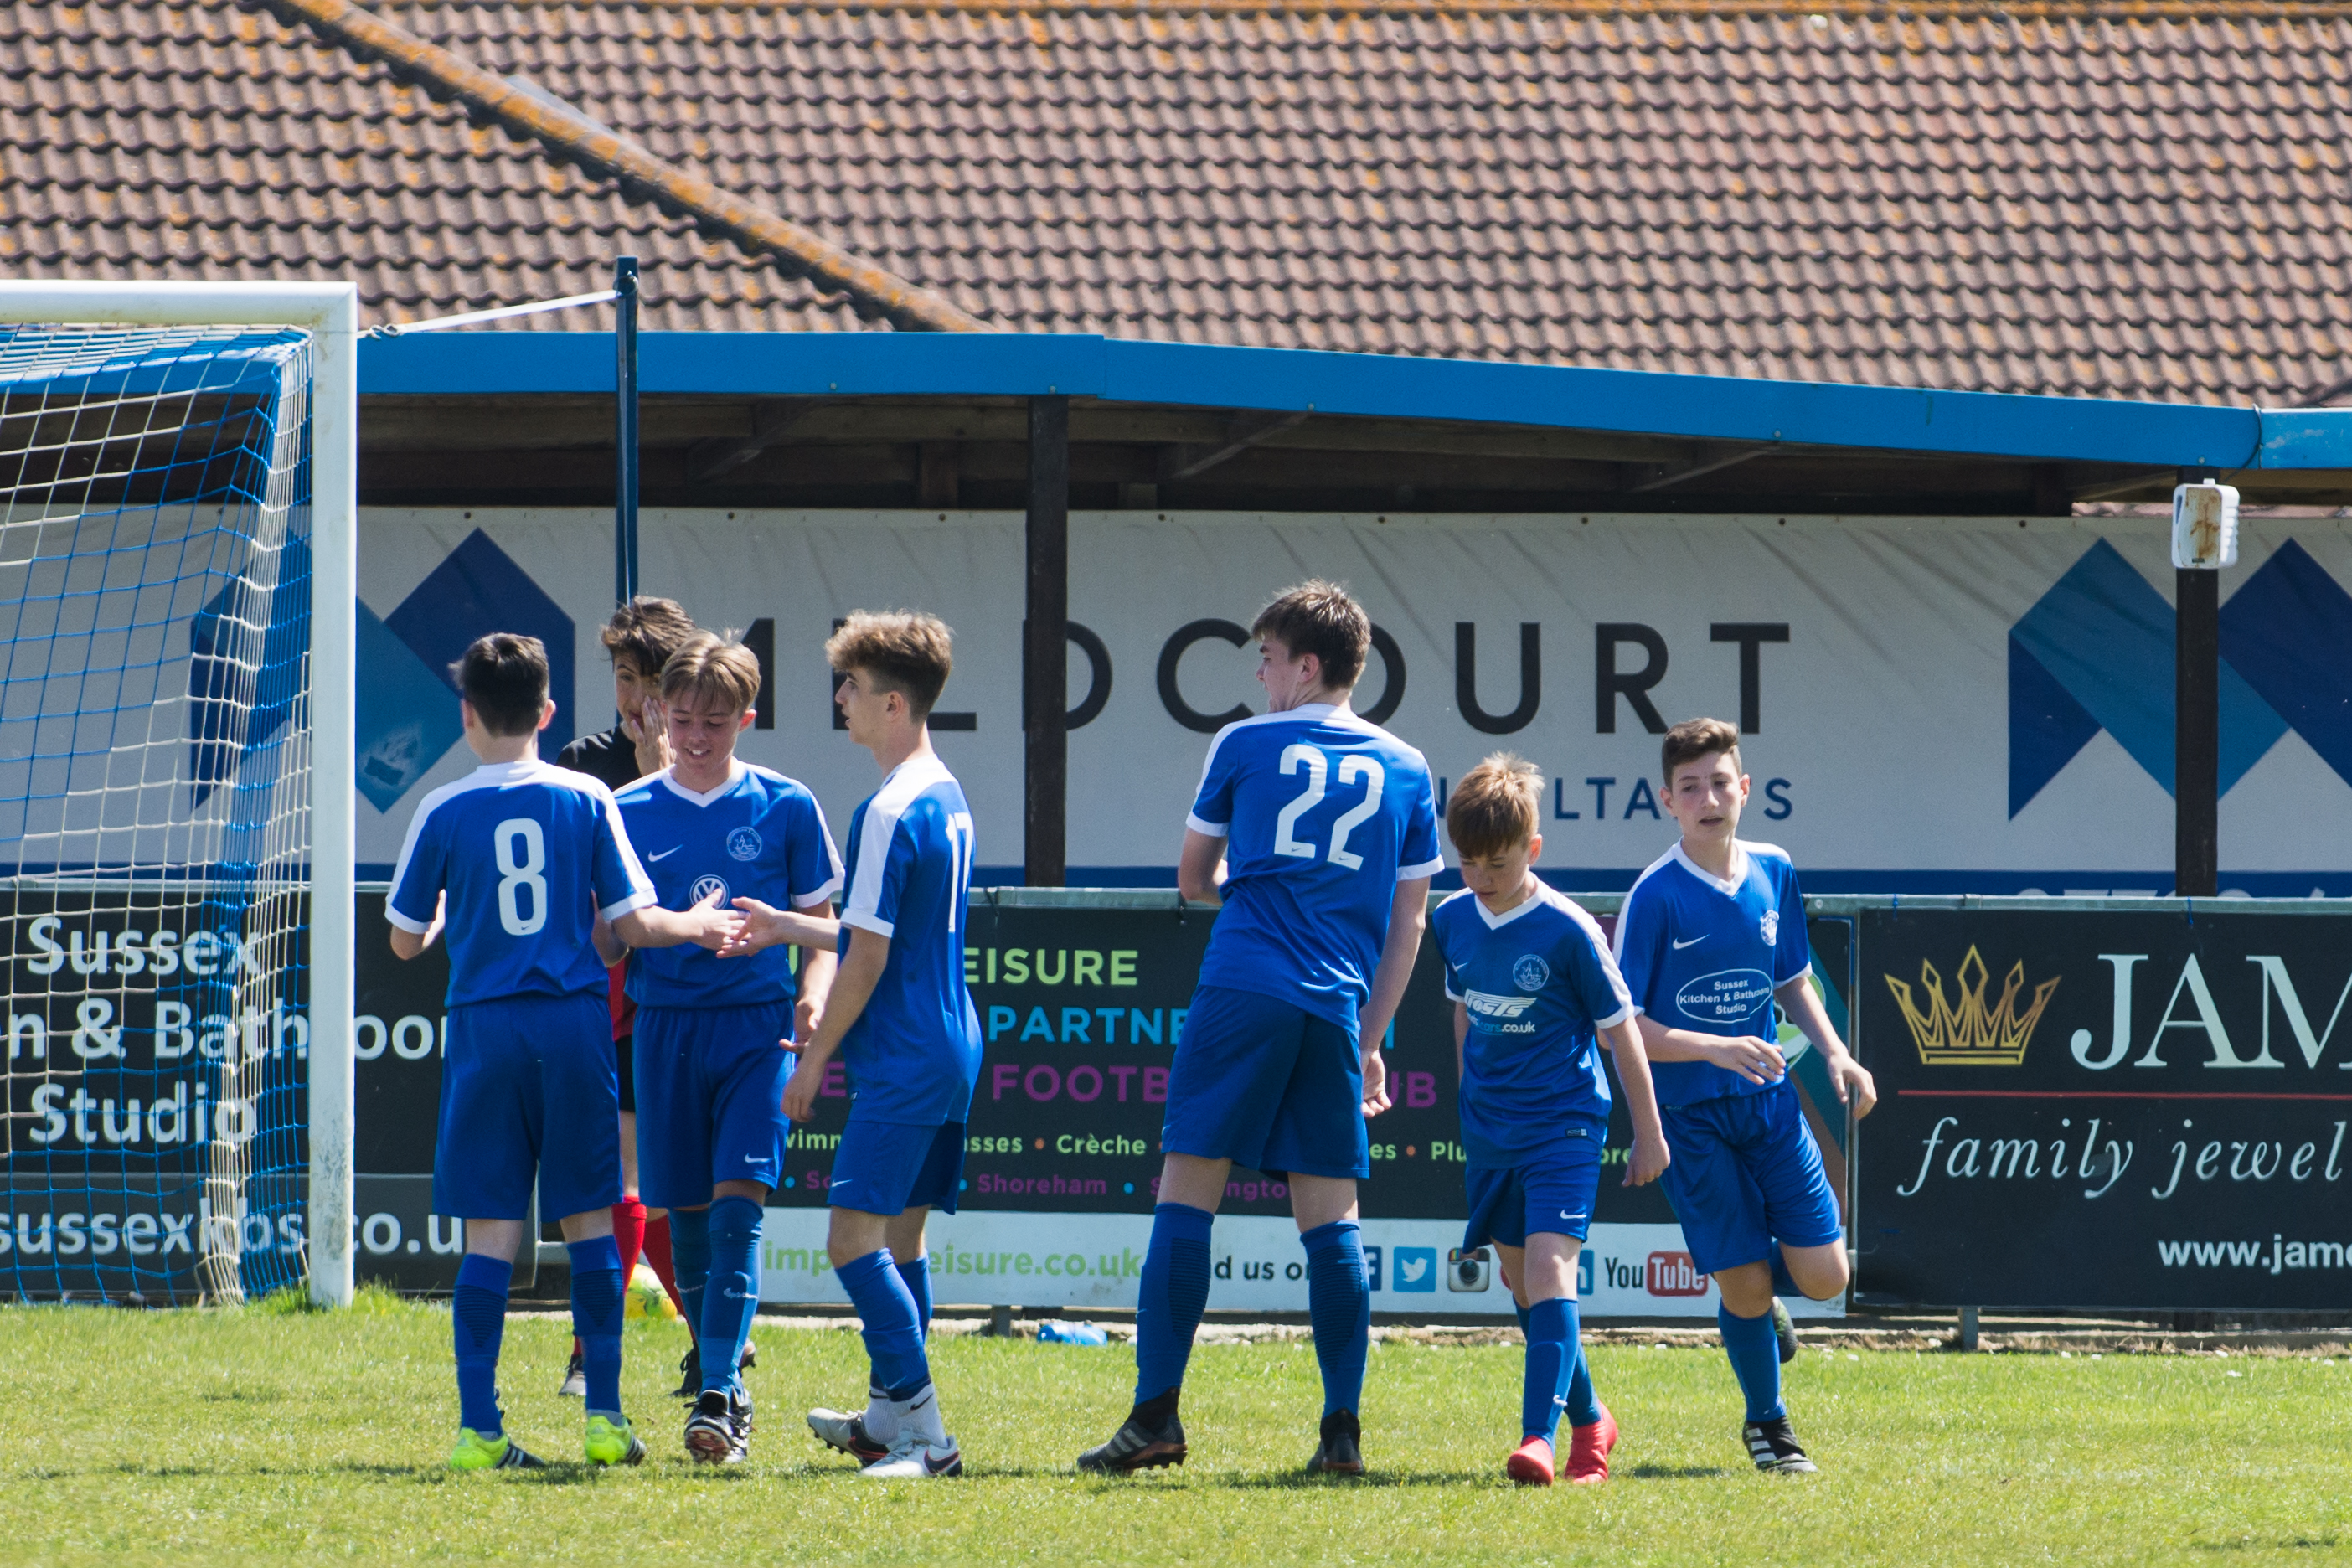 DAVID_JEFFERY Crohn's and Colitis UK, Shoreham FC U15s vs RMA U15s 06.05.18 0059